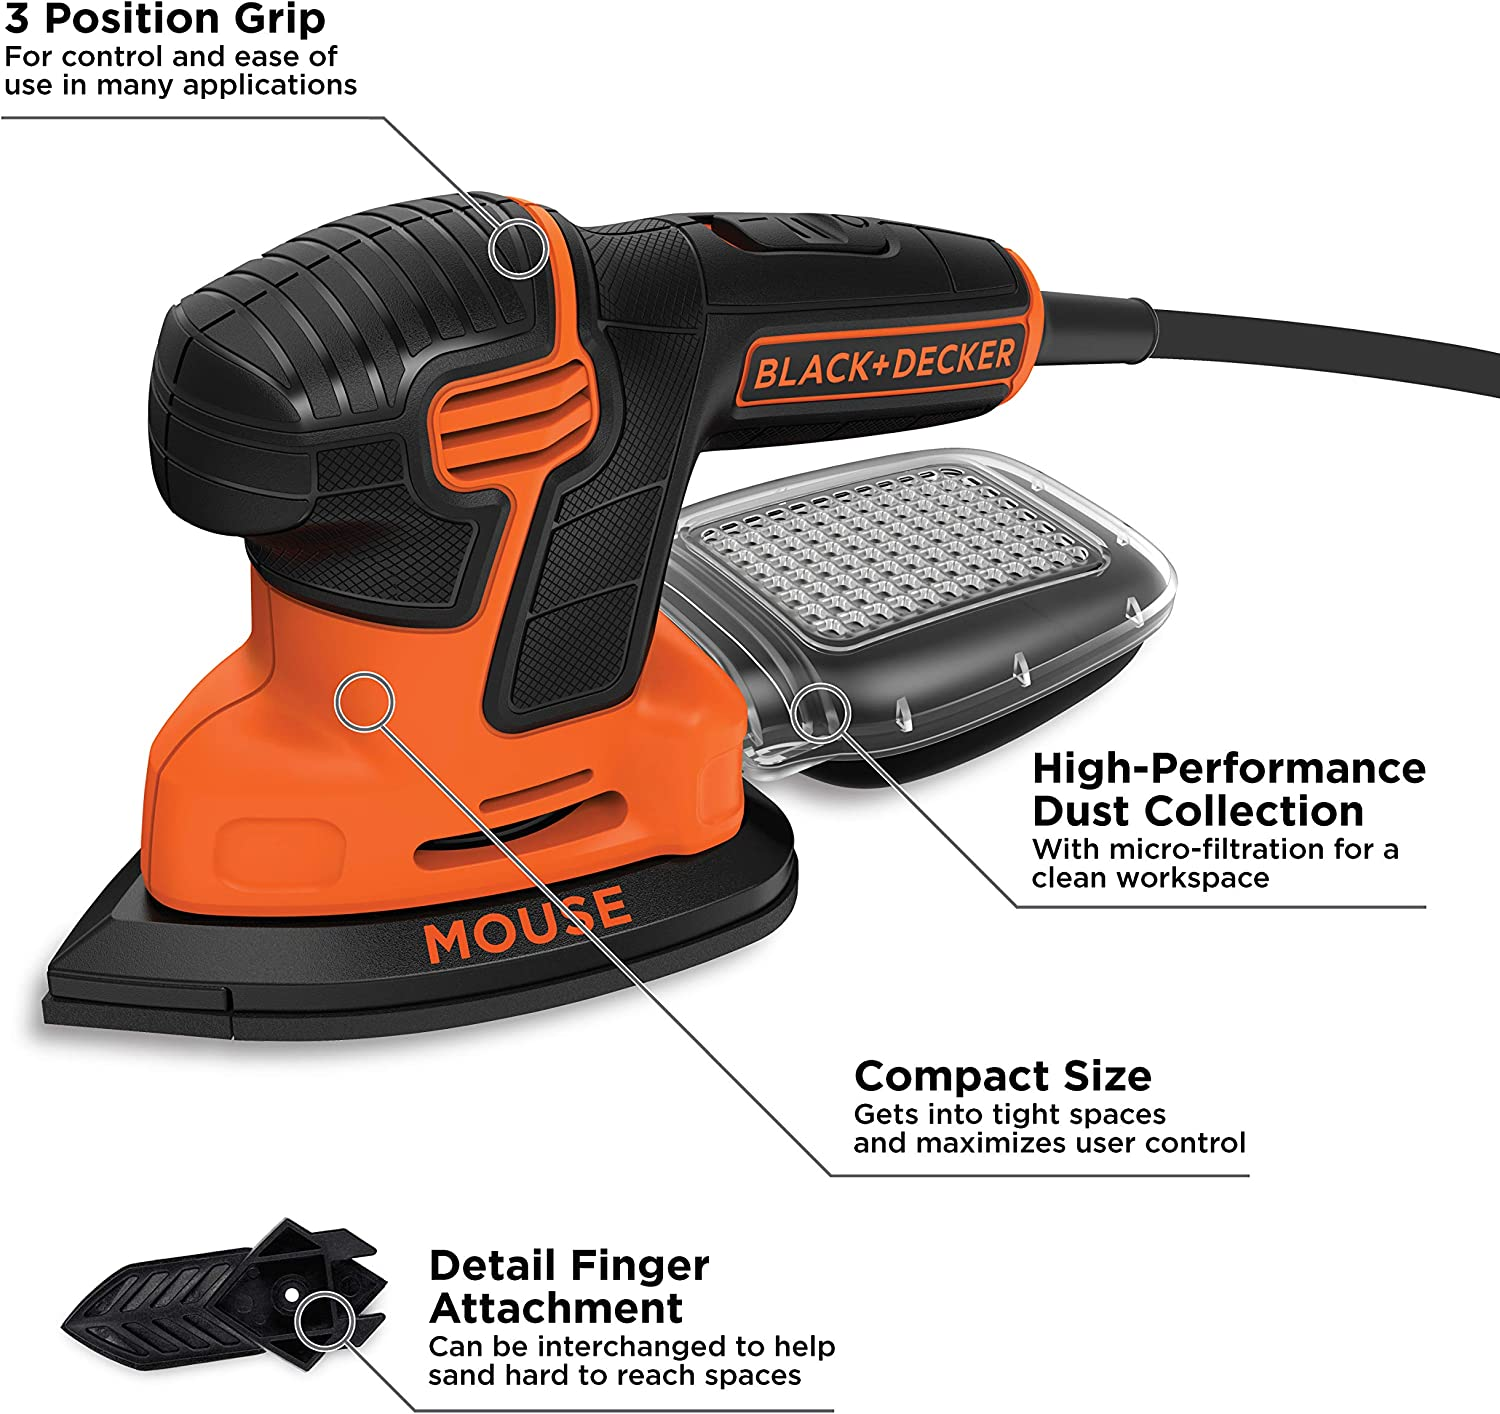 BLACK+DECKER BDEMS600 featured image 2